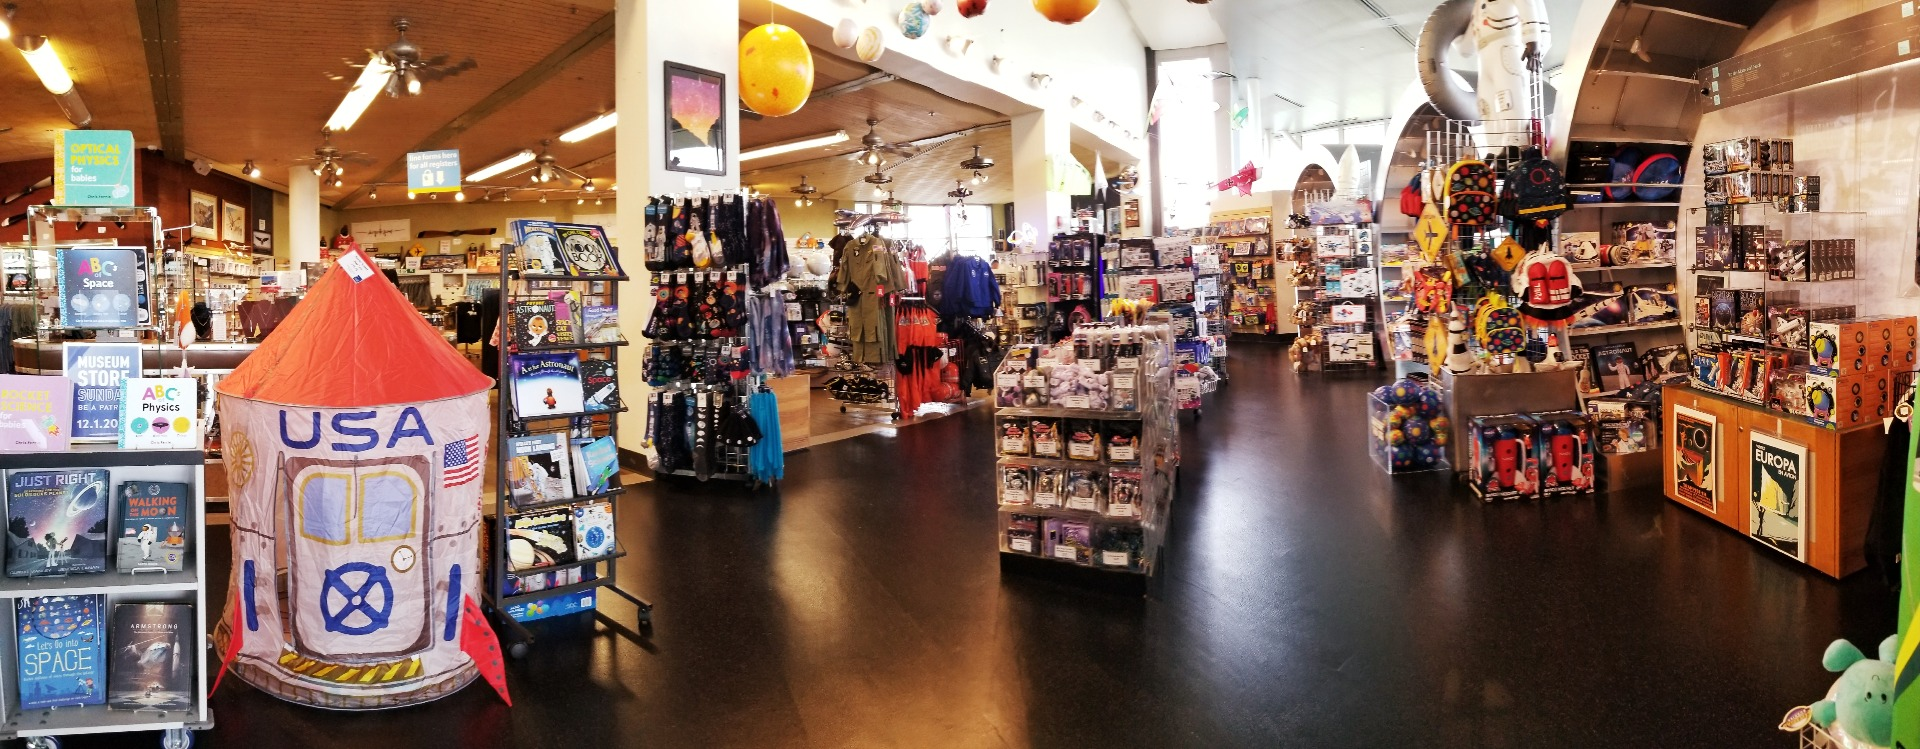 Photo of The Museum of Flight Store